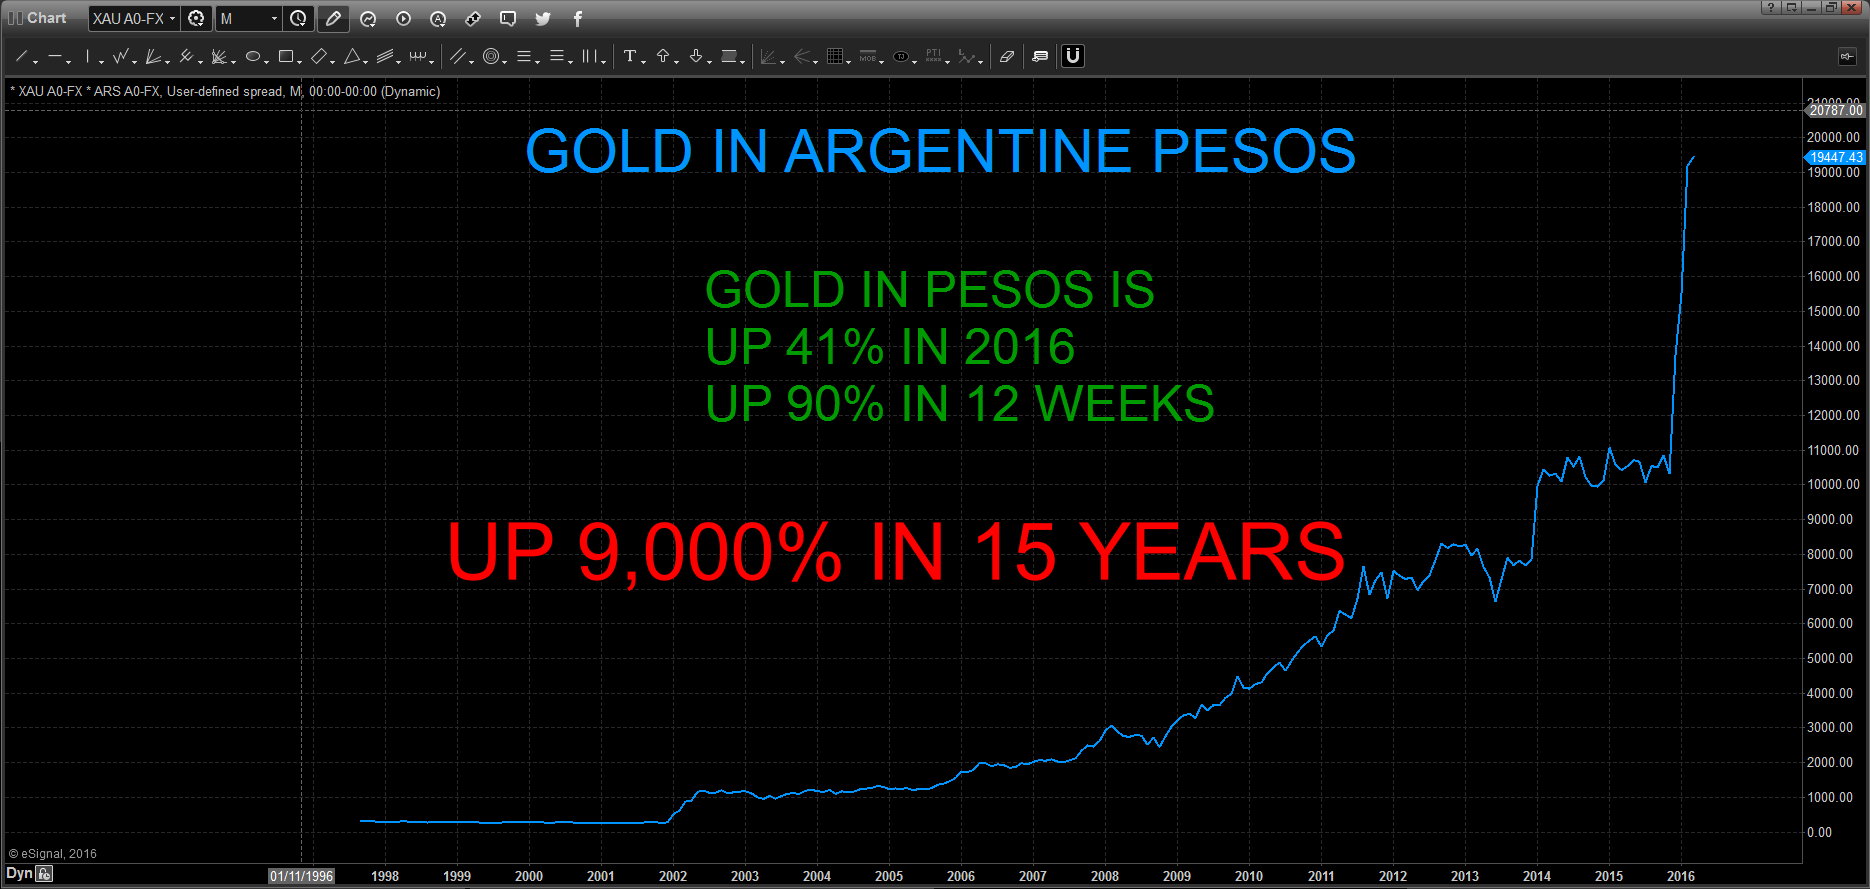 L'or en Pesos argentain